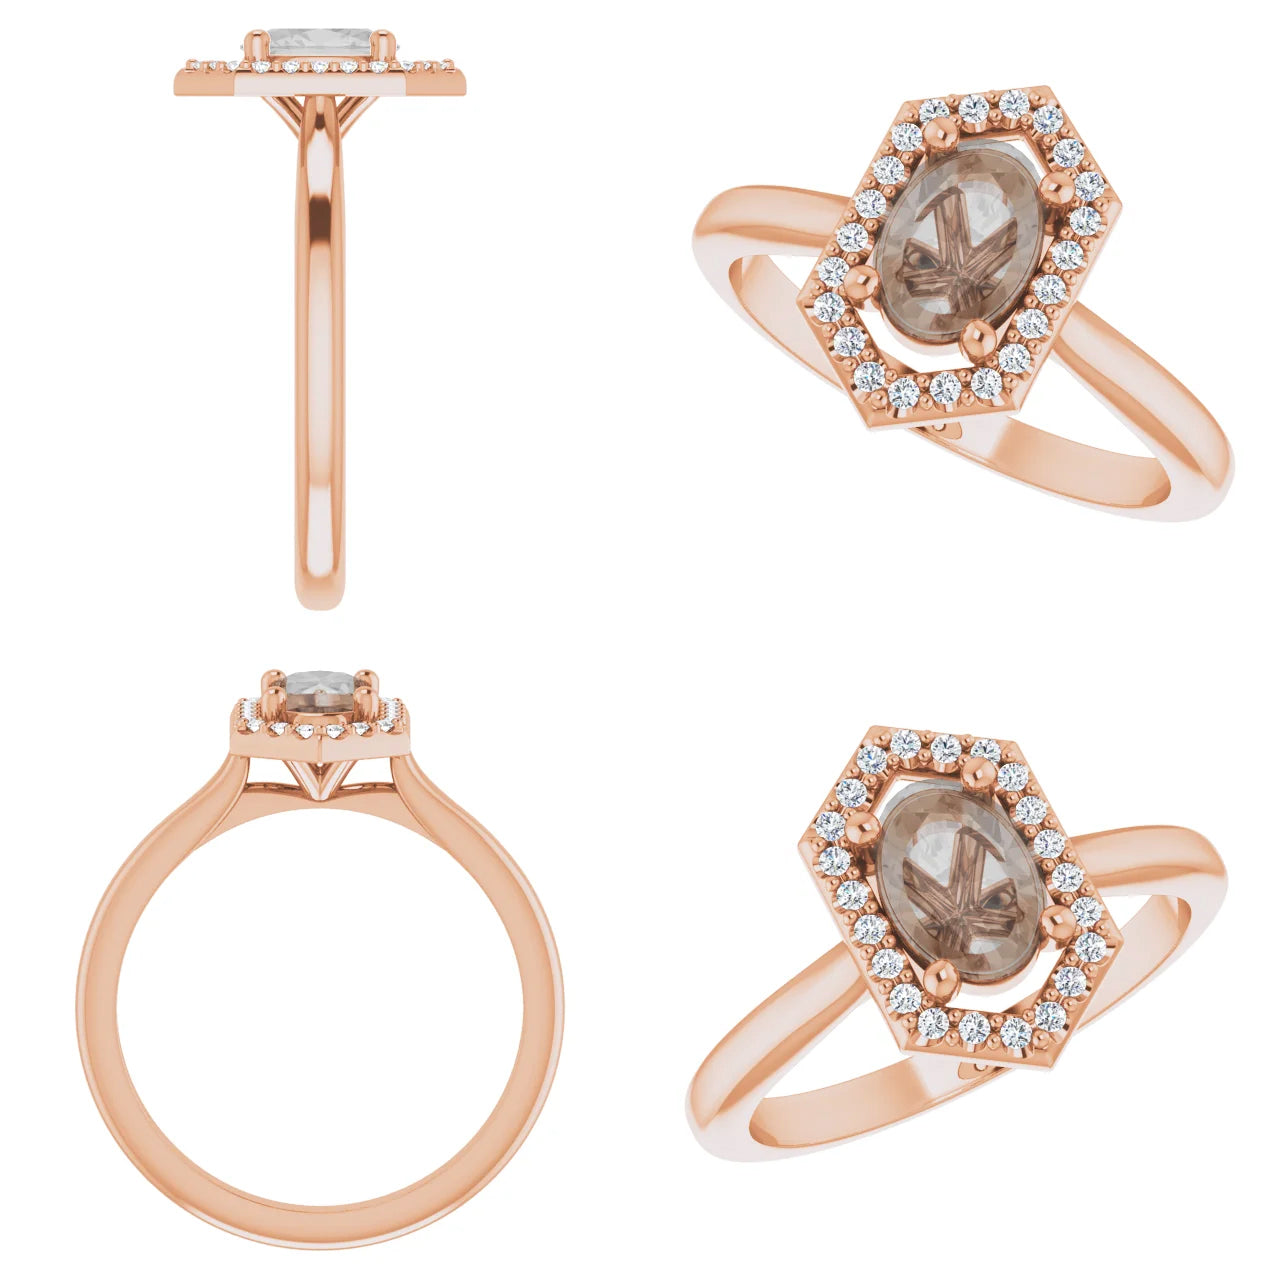 Etta Setting - Salt & Pepper Celestial Diamond Engagement Rings and Wedding Bands  by Midwinter Co.